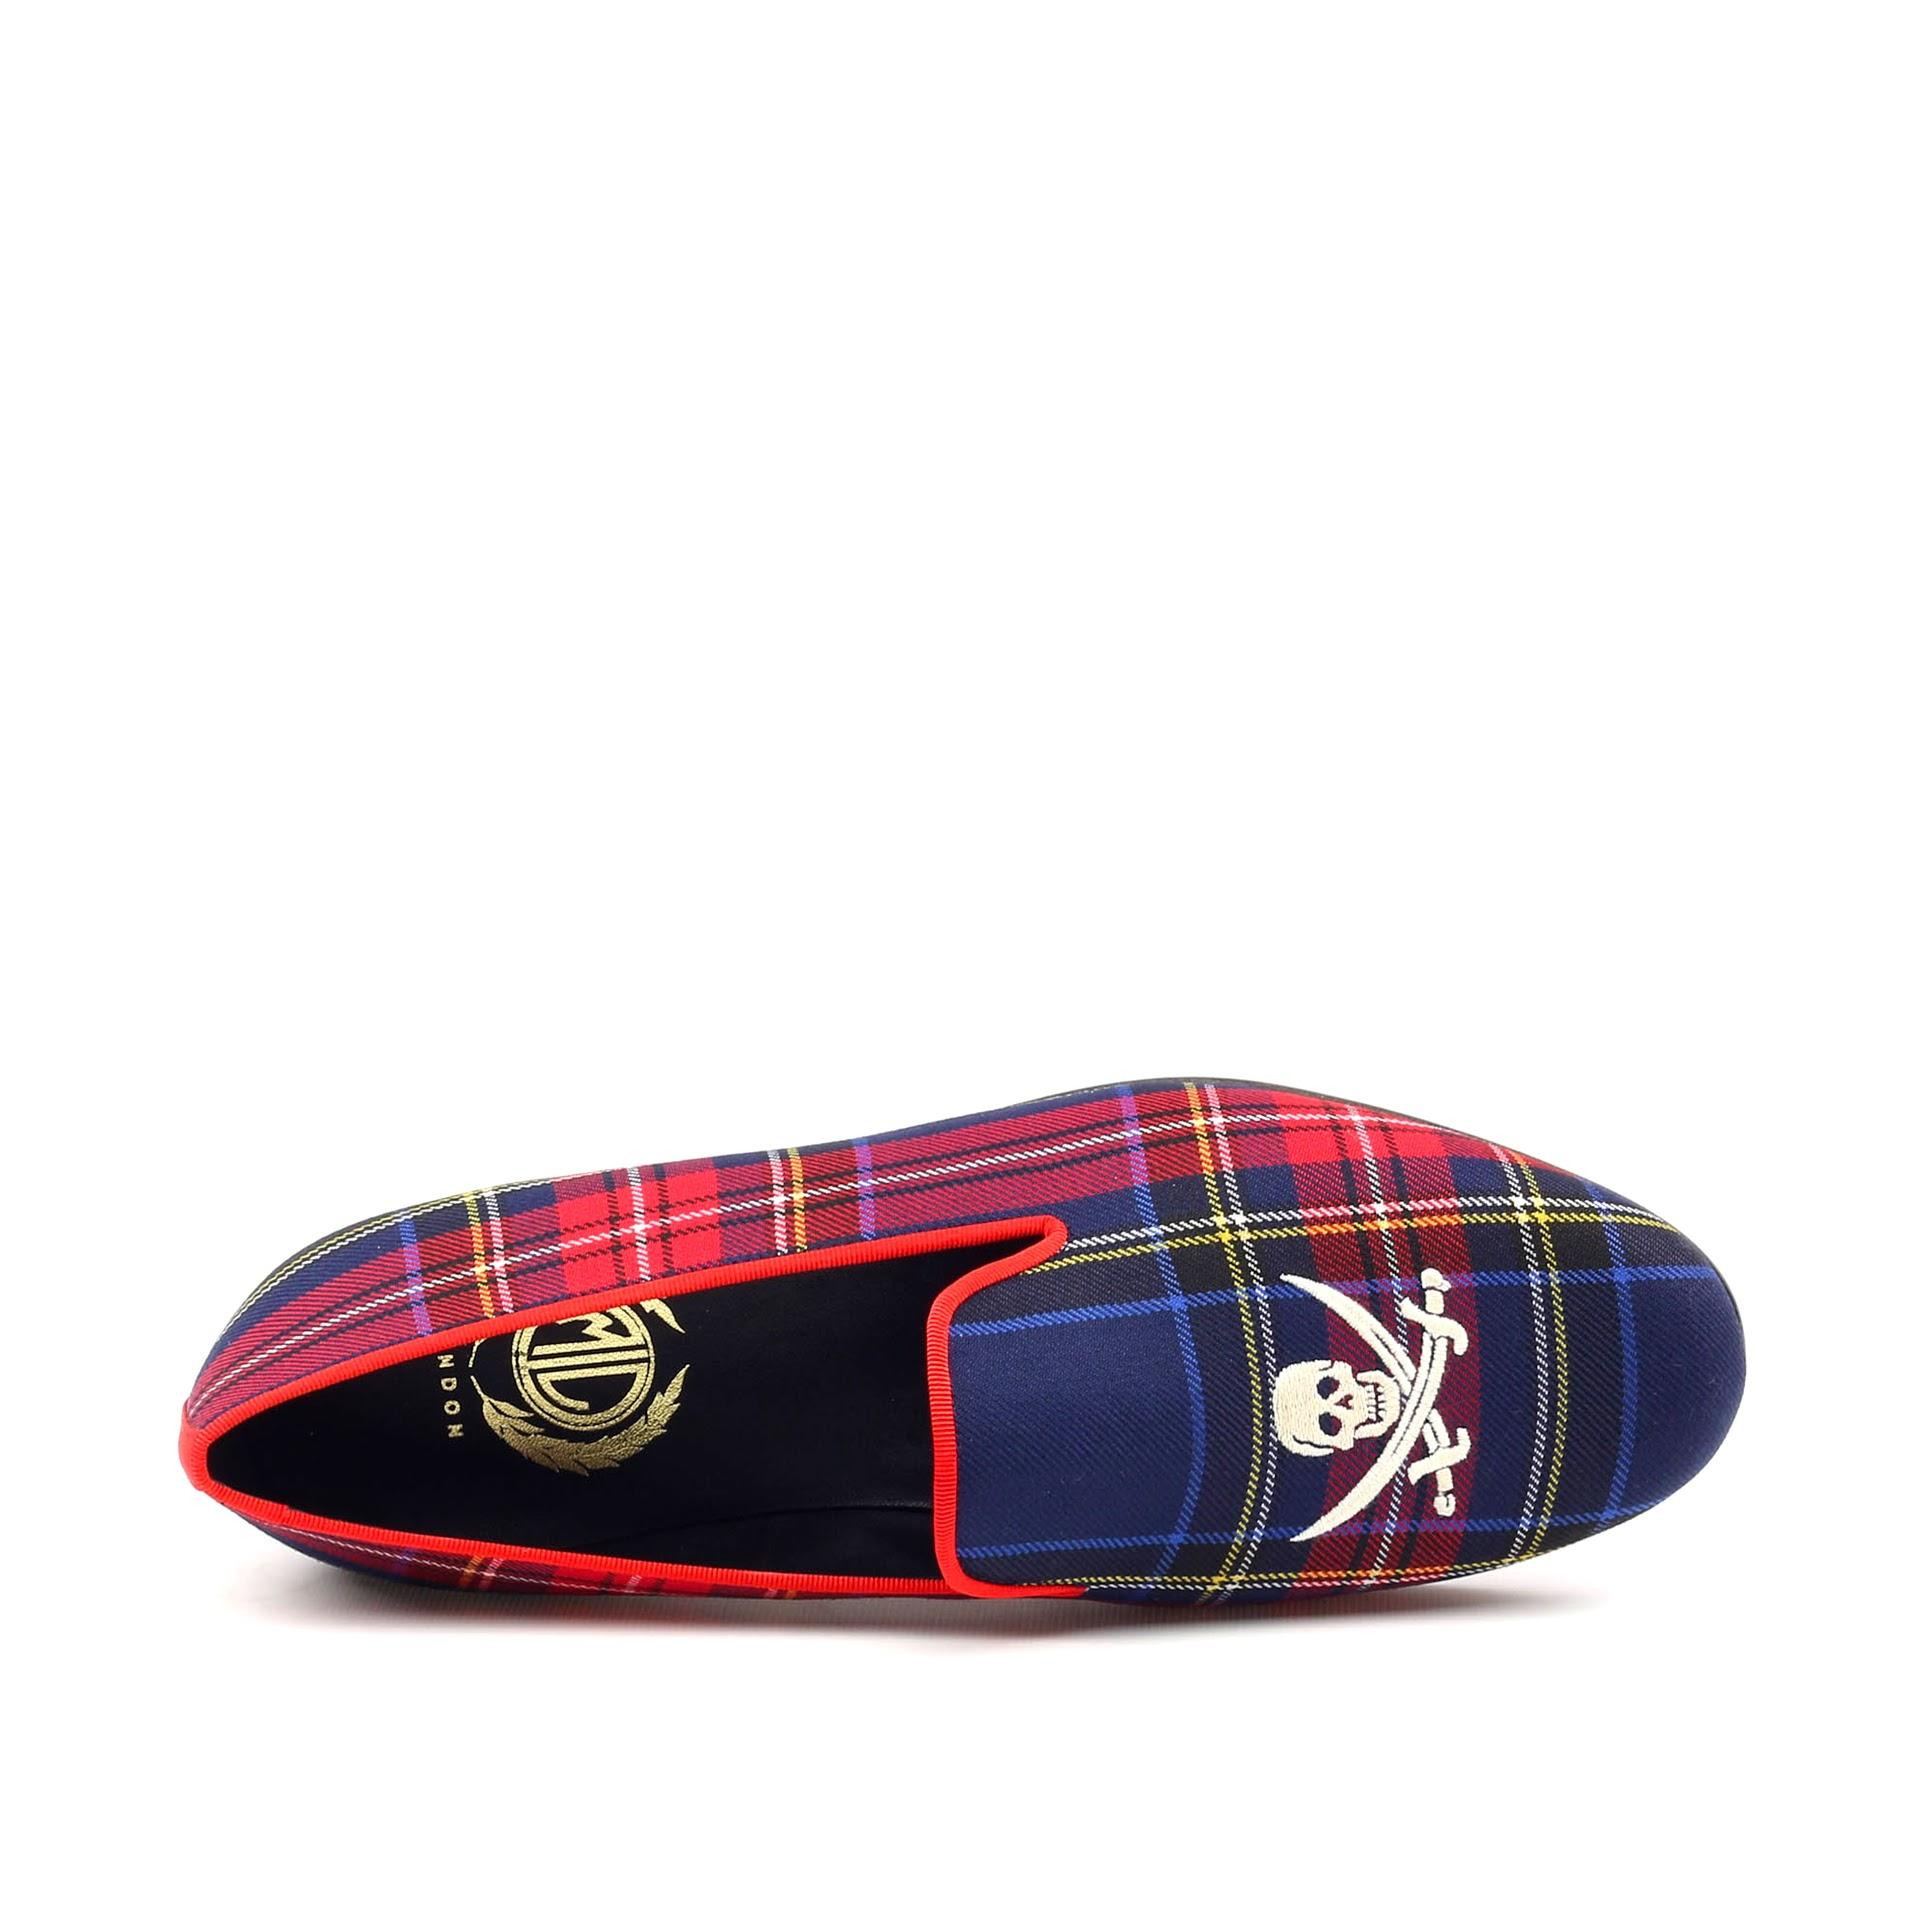 Manor of London 'Jolly Roger' Navy Mens Tartan Leather Luxury Slip On Slippers Top View